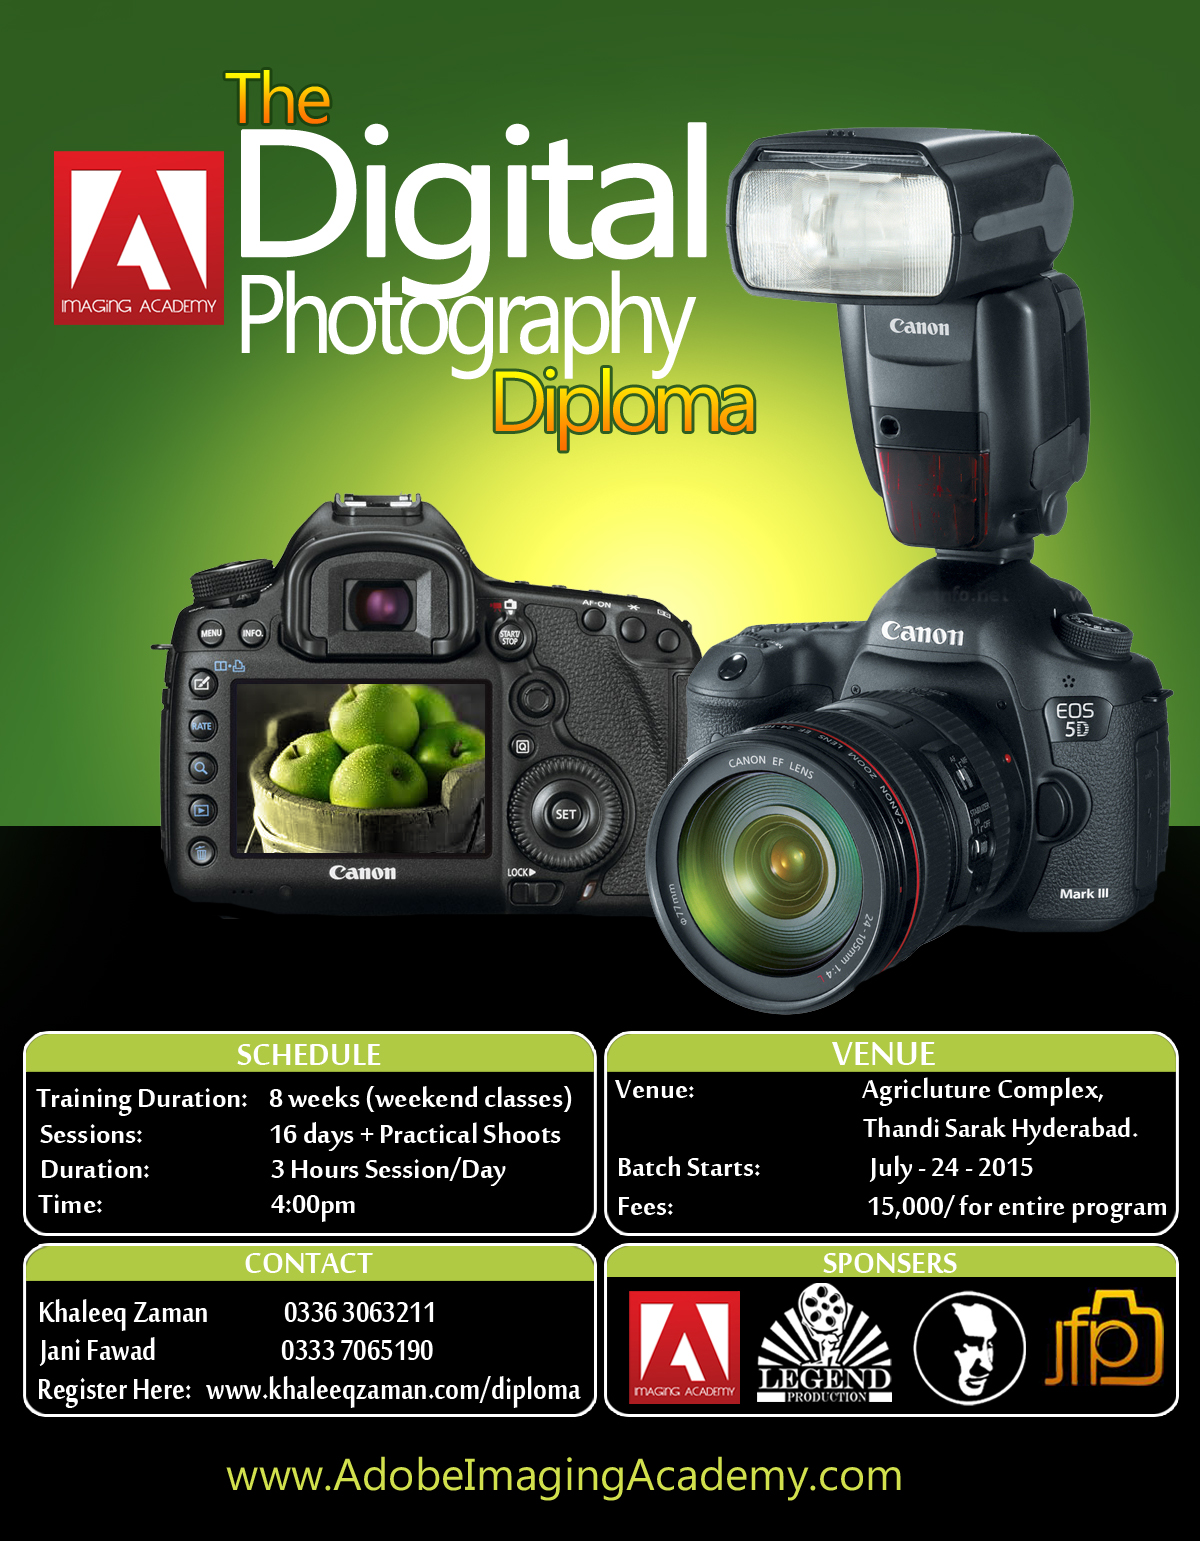 Digital Photography Workshop Poster Design PSD By KhaleeqXaman